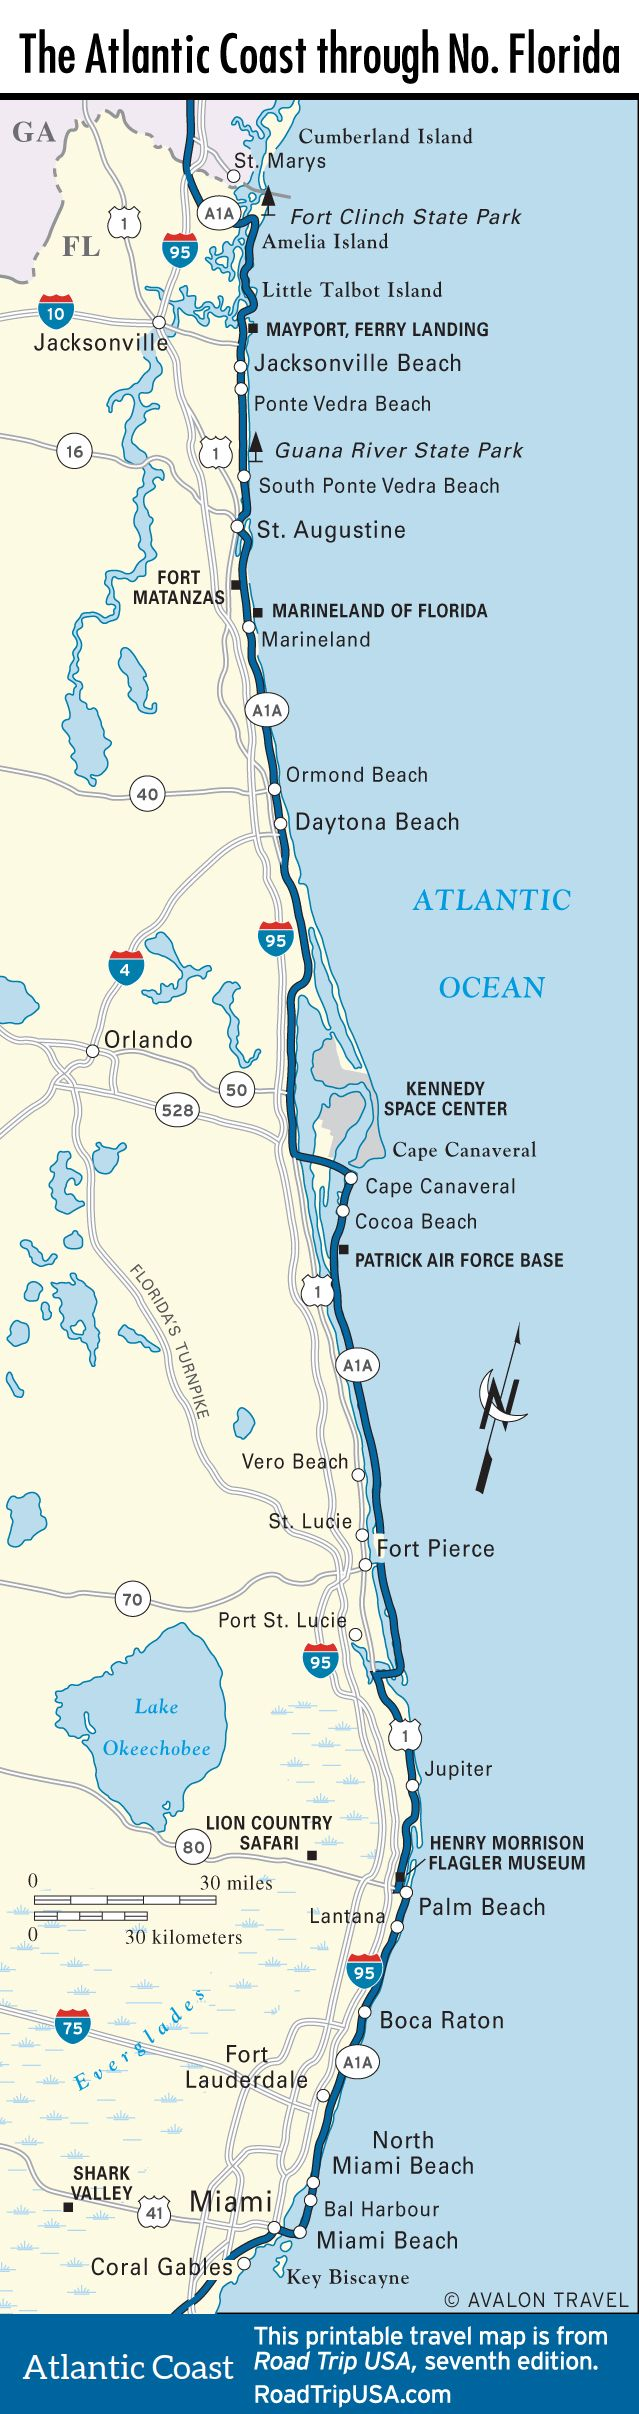 Map Northern Florida.Map Of The Atlantic Coast Through Northern Florida Florida A1a